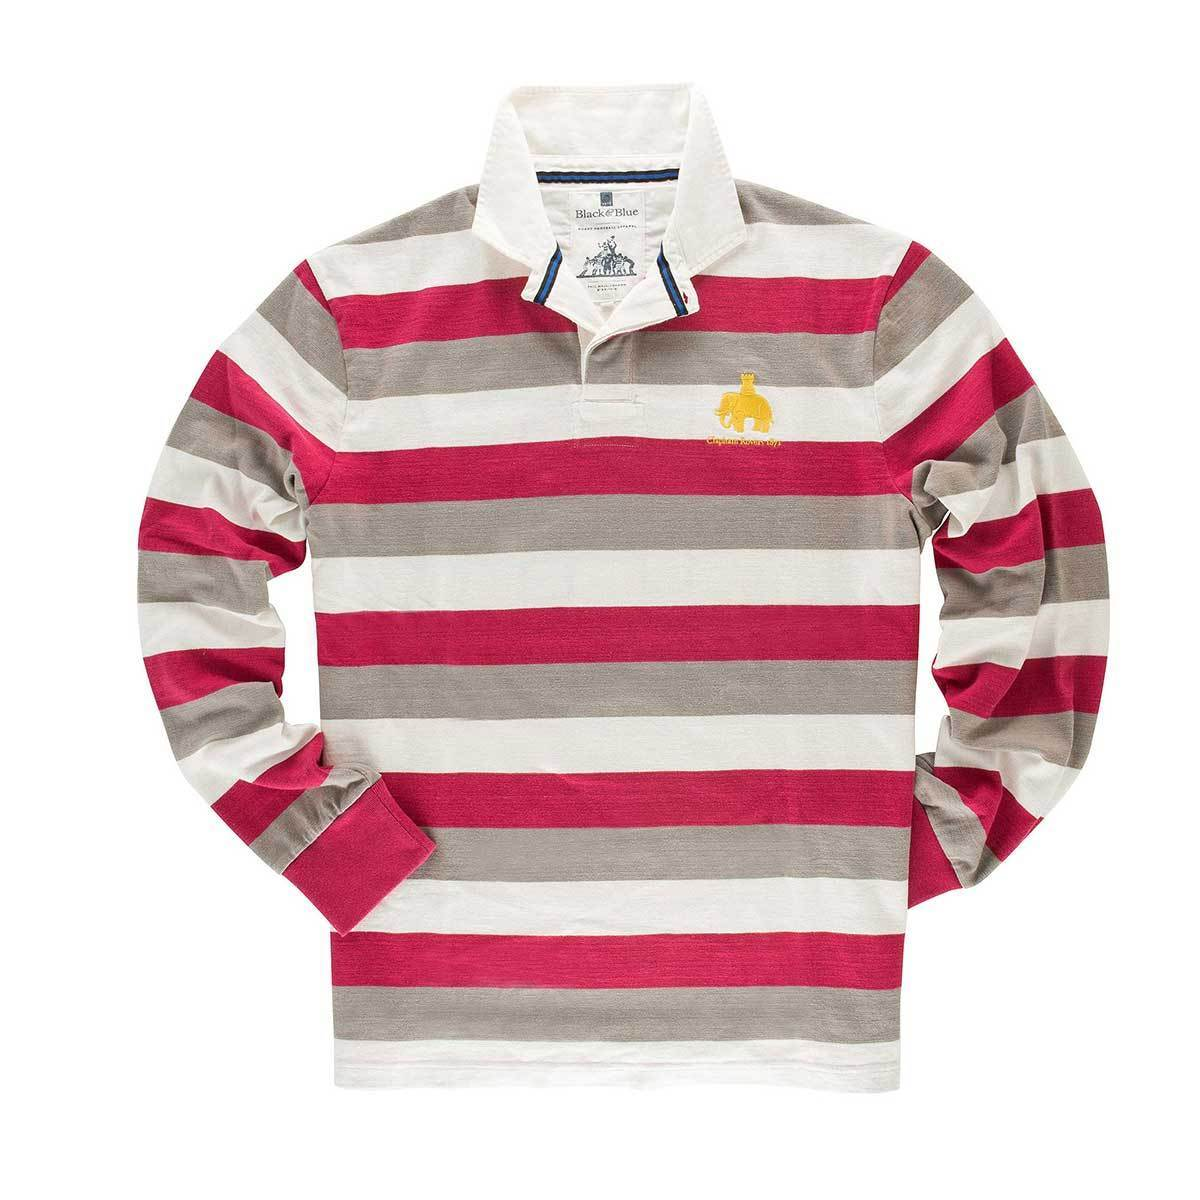 Vintage, Classic Cotton Rugby Shirt | Black & Blue 1871 | Clapham Rovers 1871 Rugby Shirt